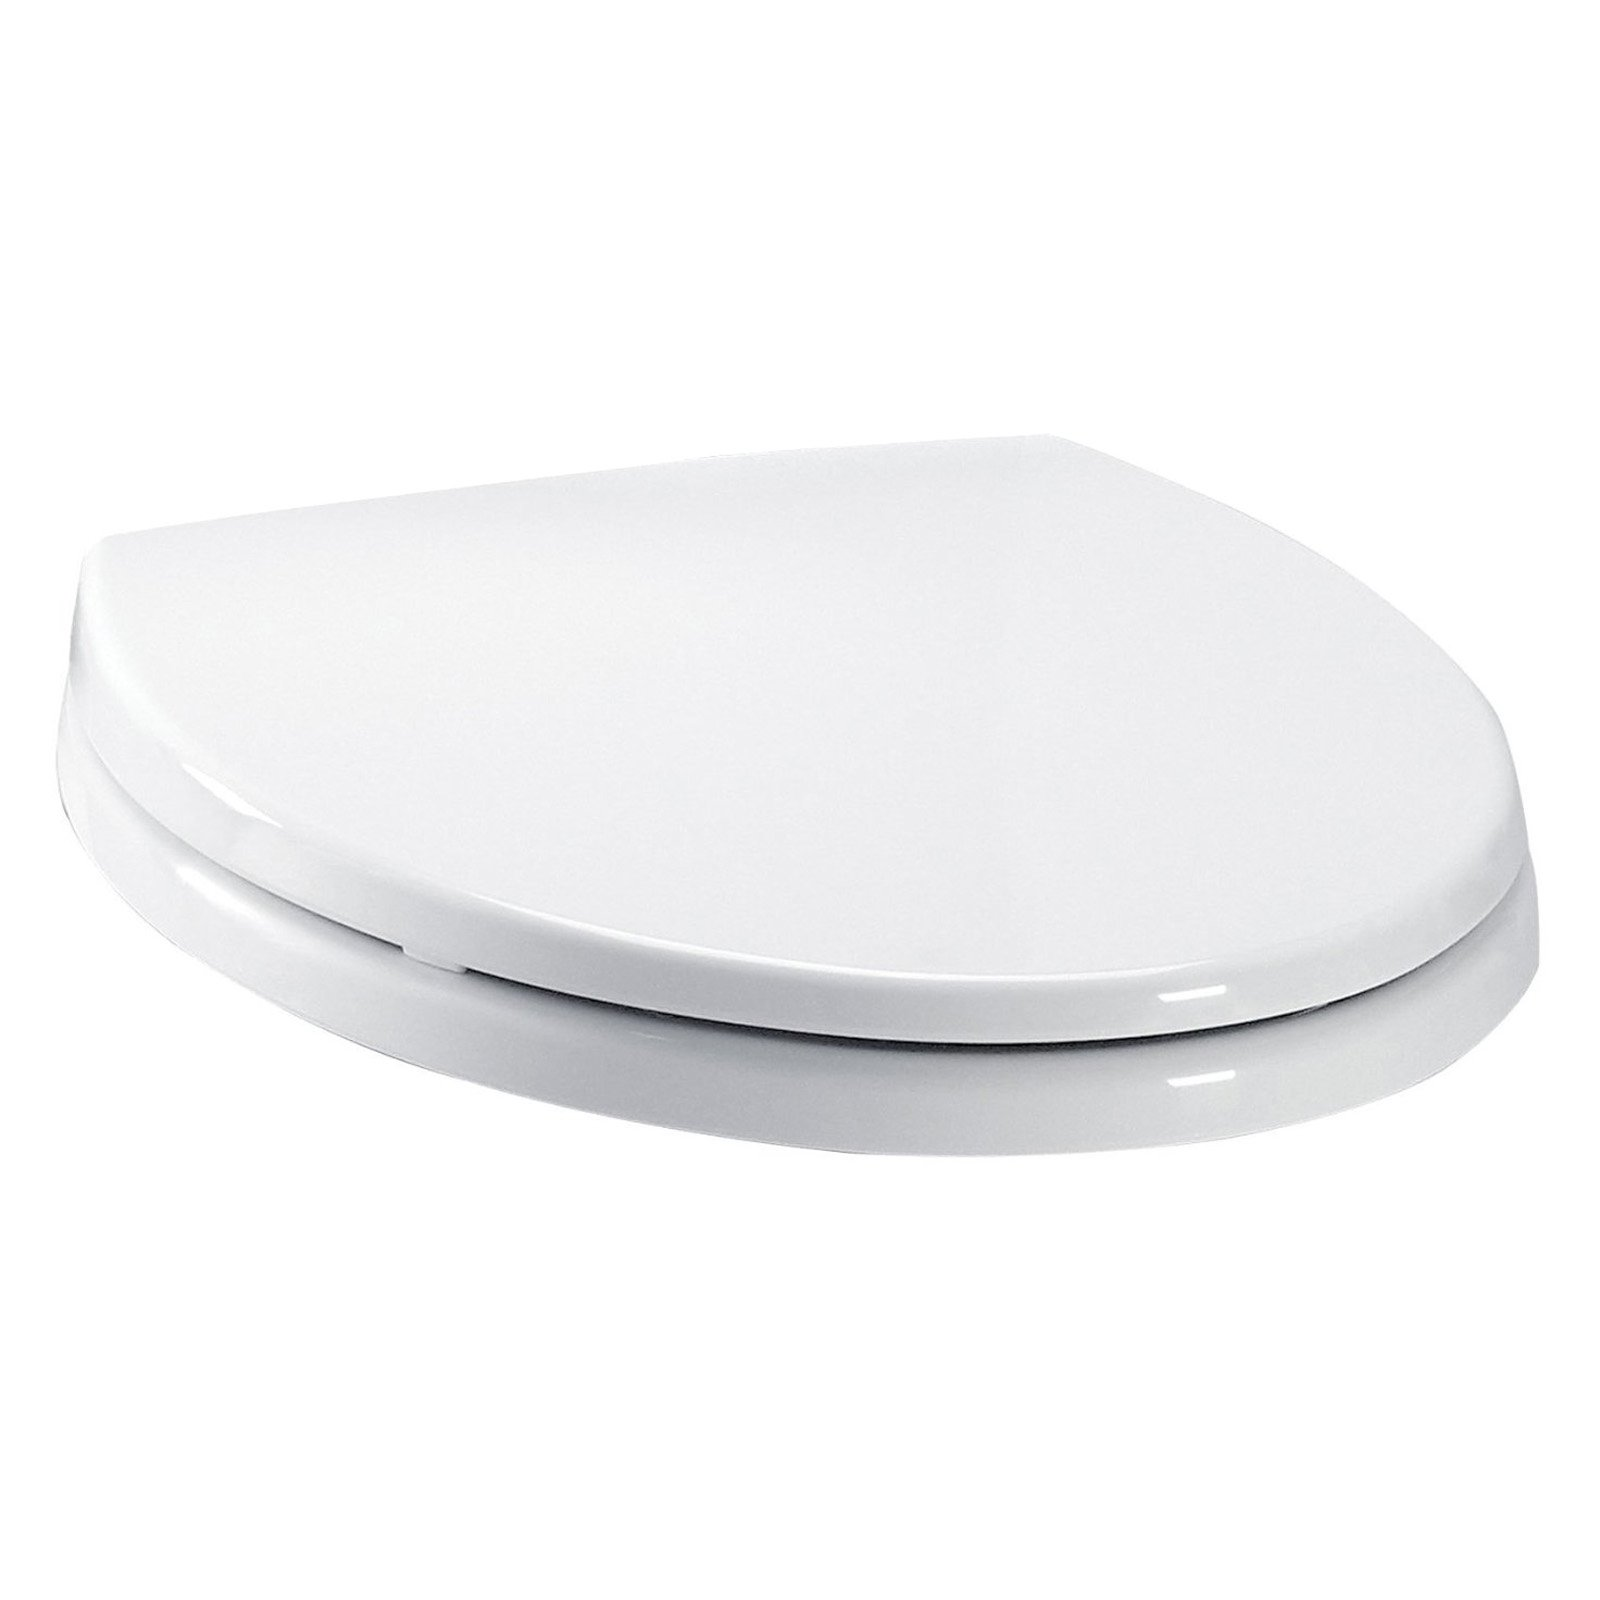 Toto SS114 SoftClose Plastic Elongated Toilet Seat Colonial